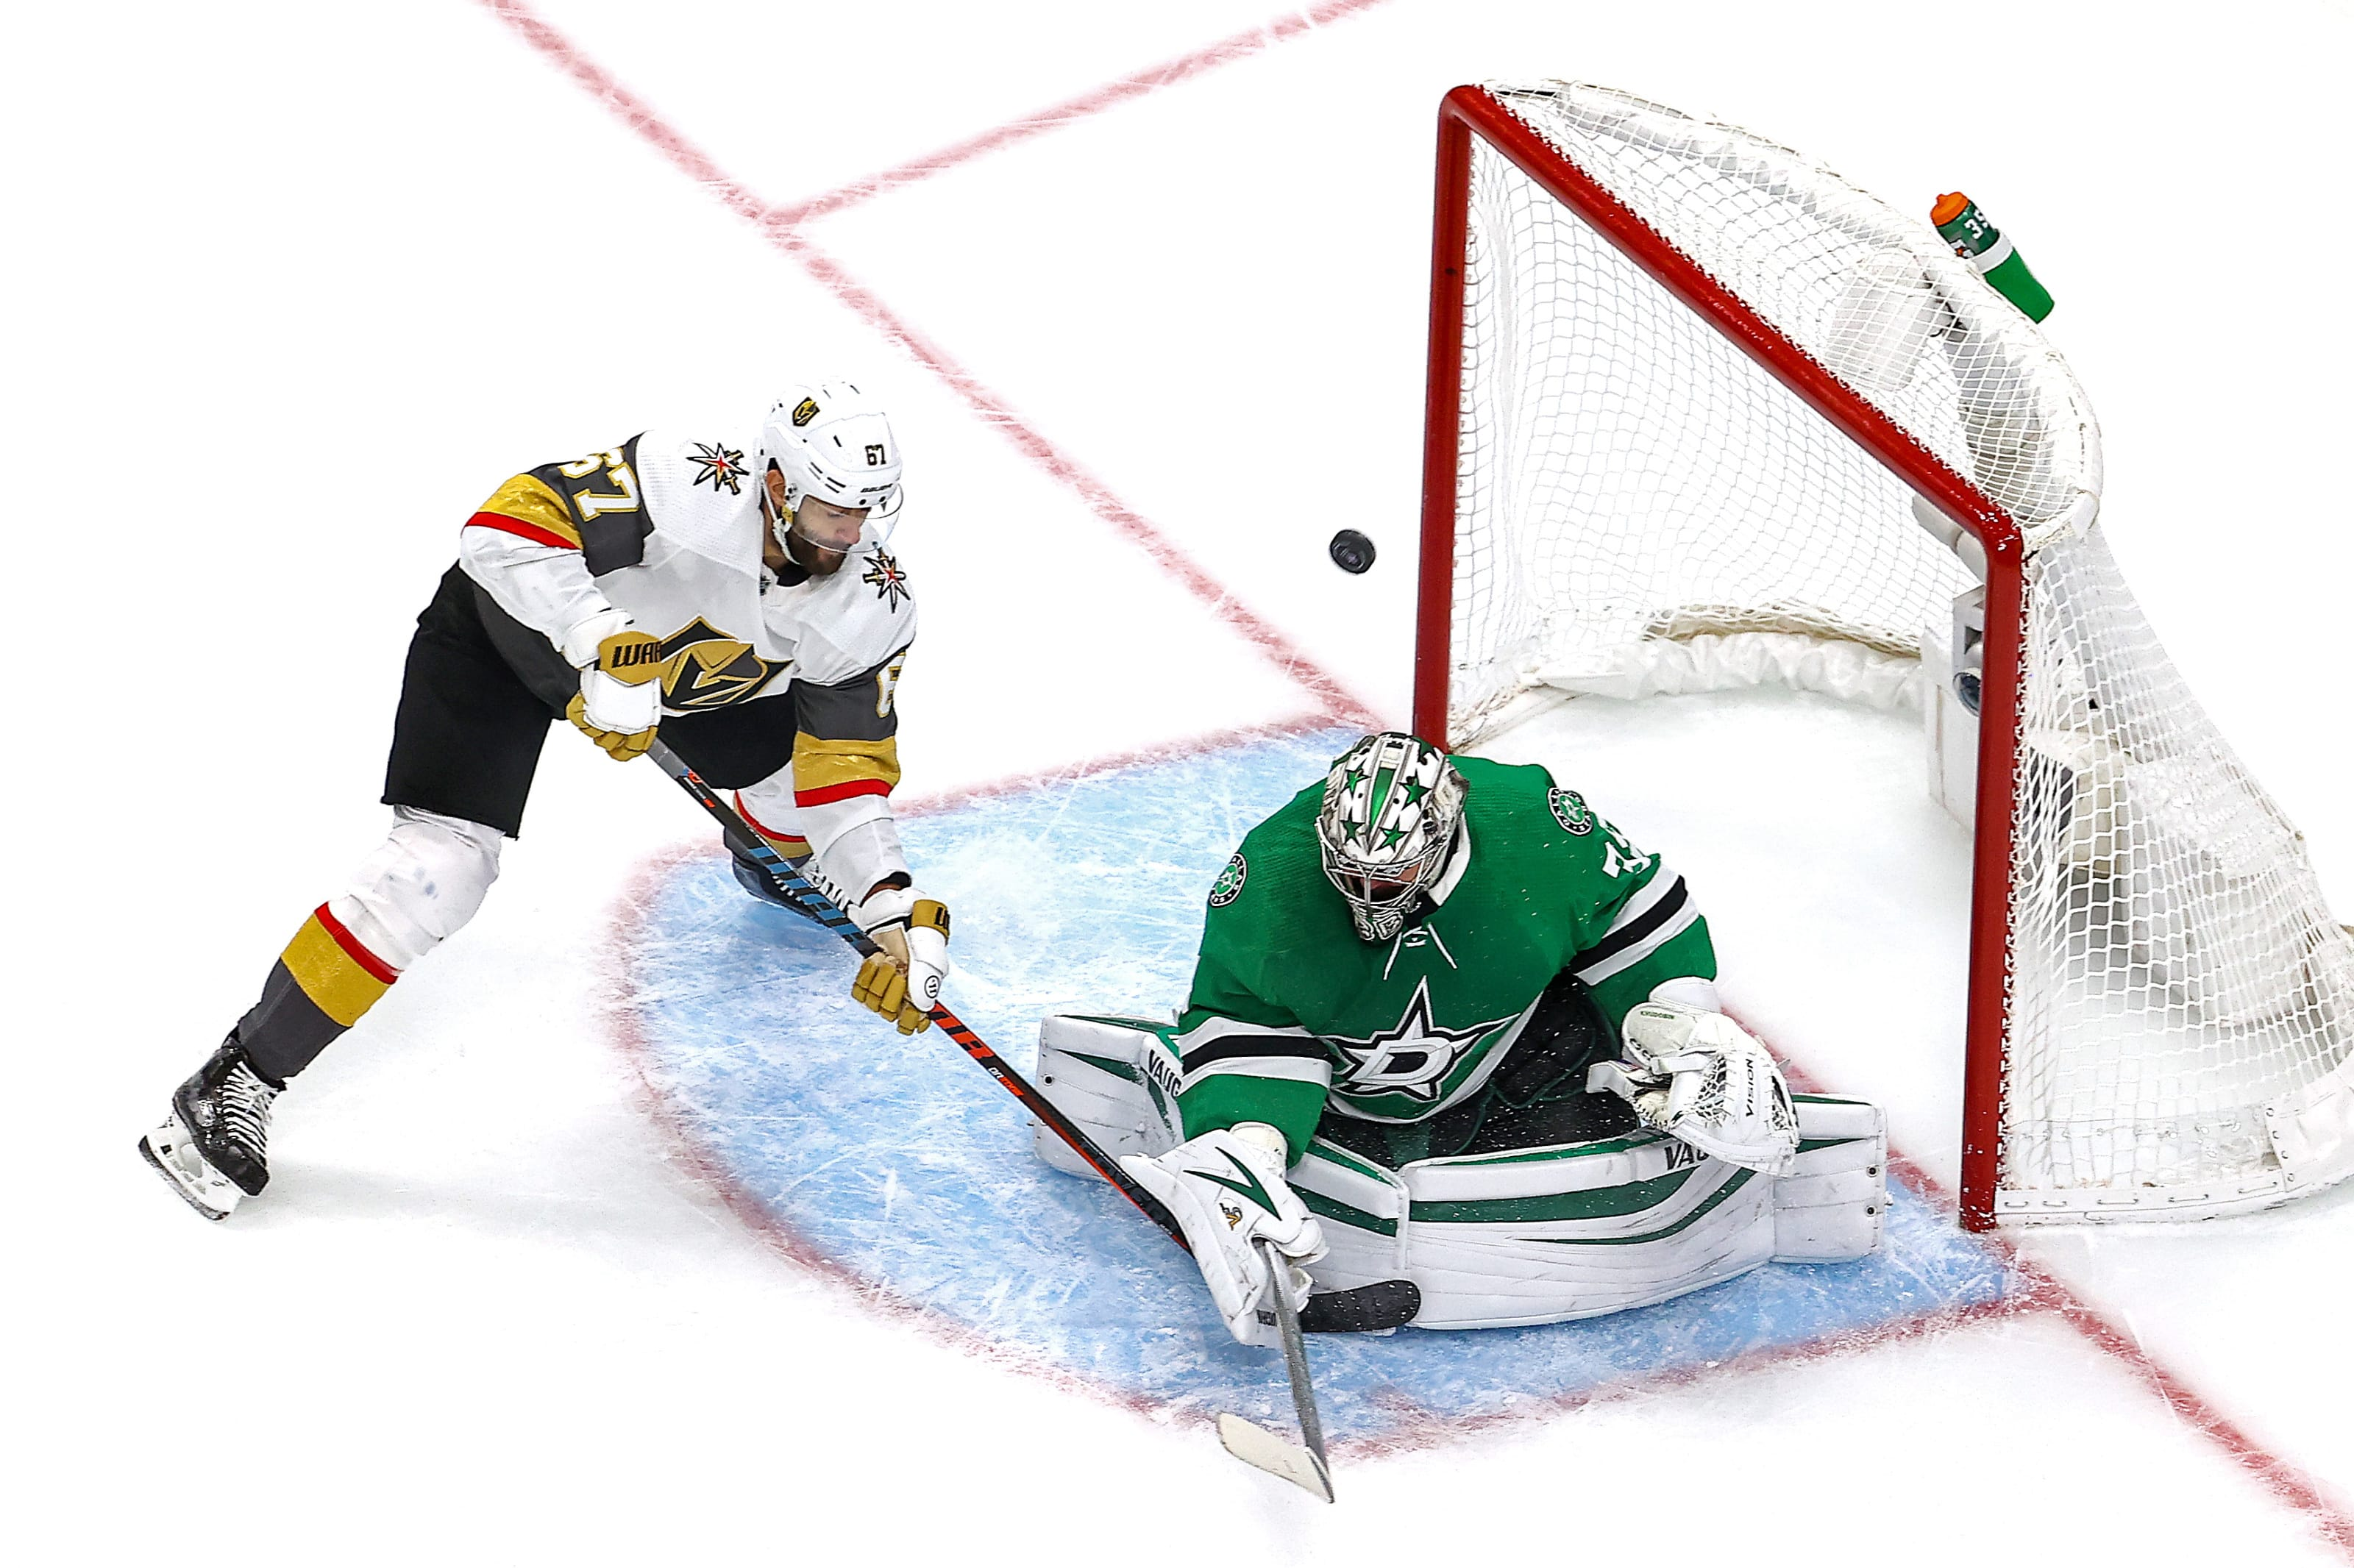 Max Pacioretty #67 of the Vegas Golden Knights attempts a shot against Anton Khudobin #35 of the Dallas Stars